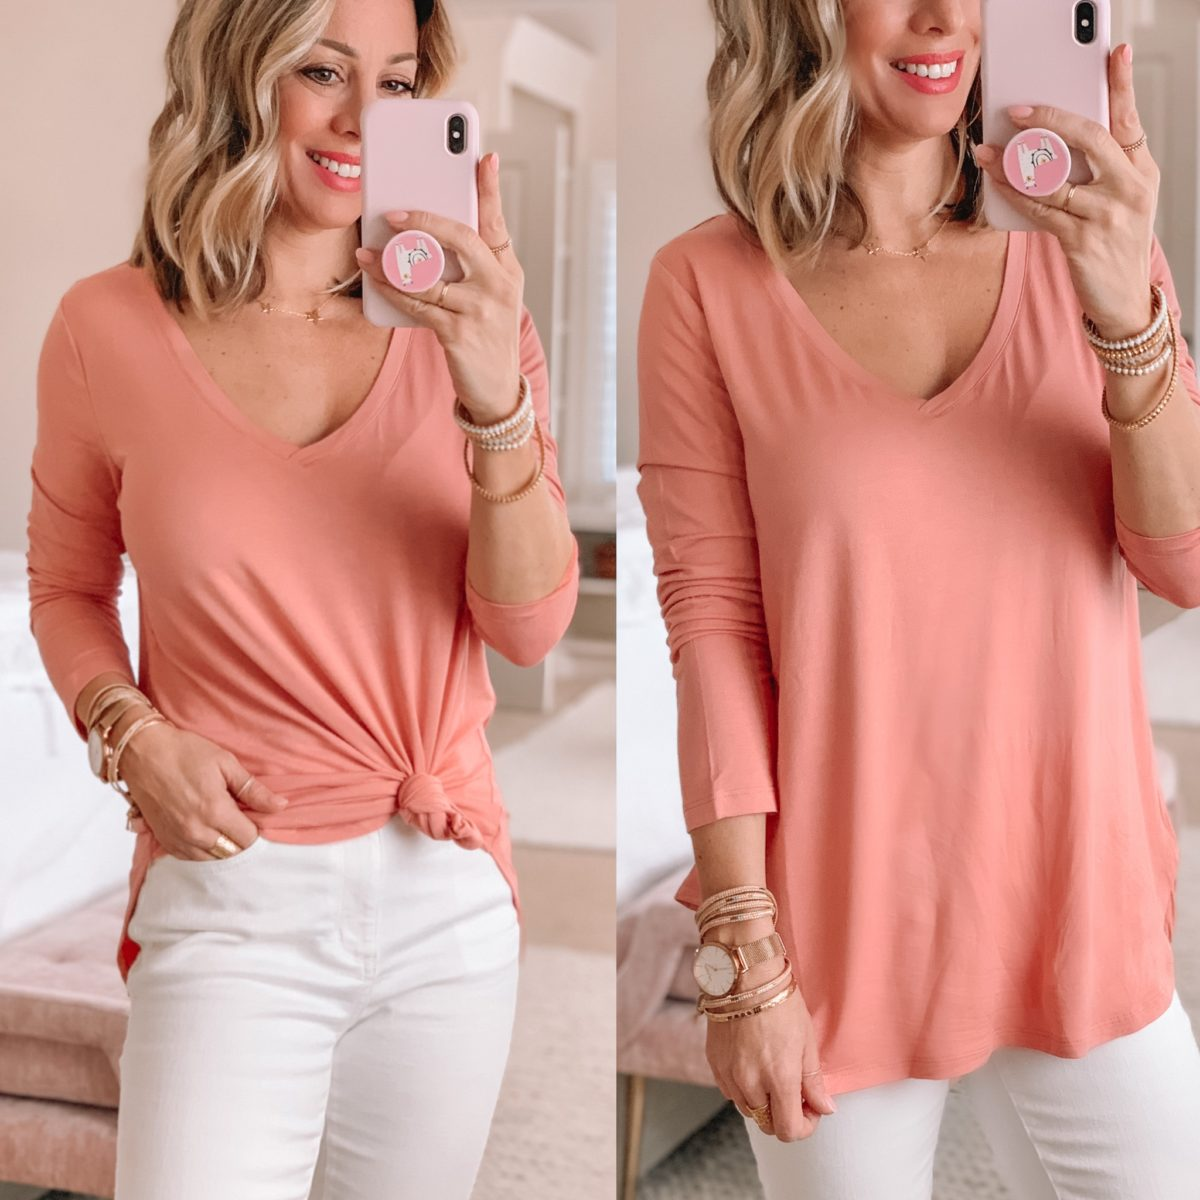 V-neck Long sleeve Tunic Top, White Jeans